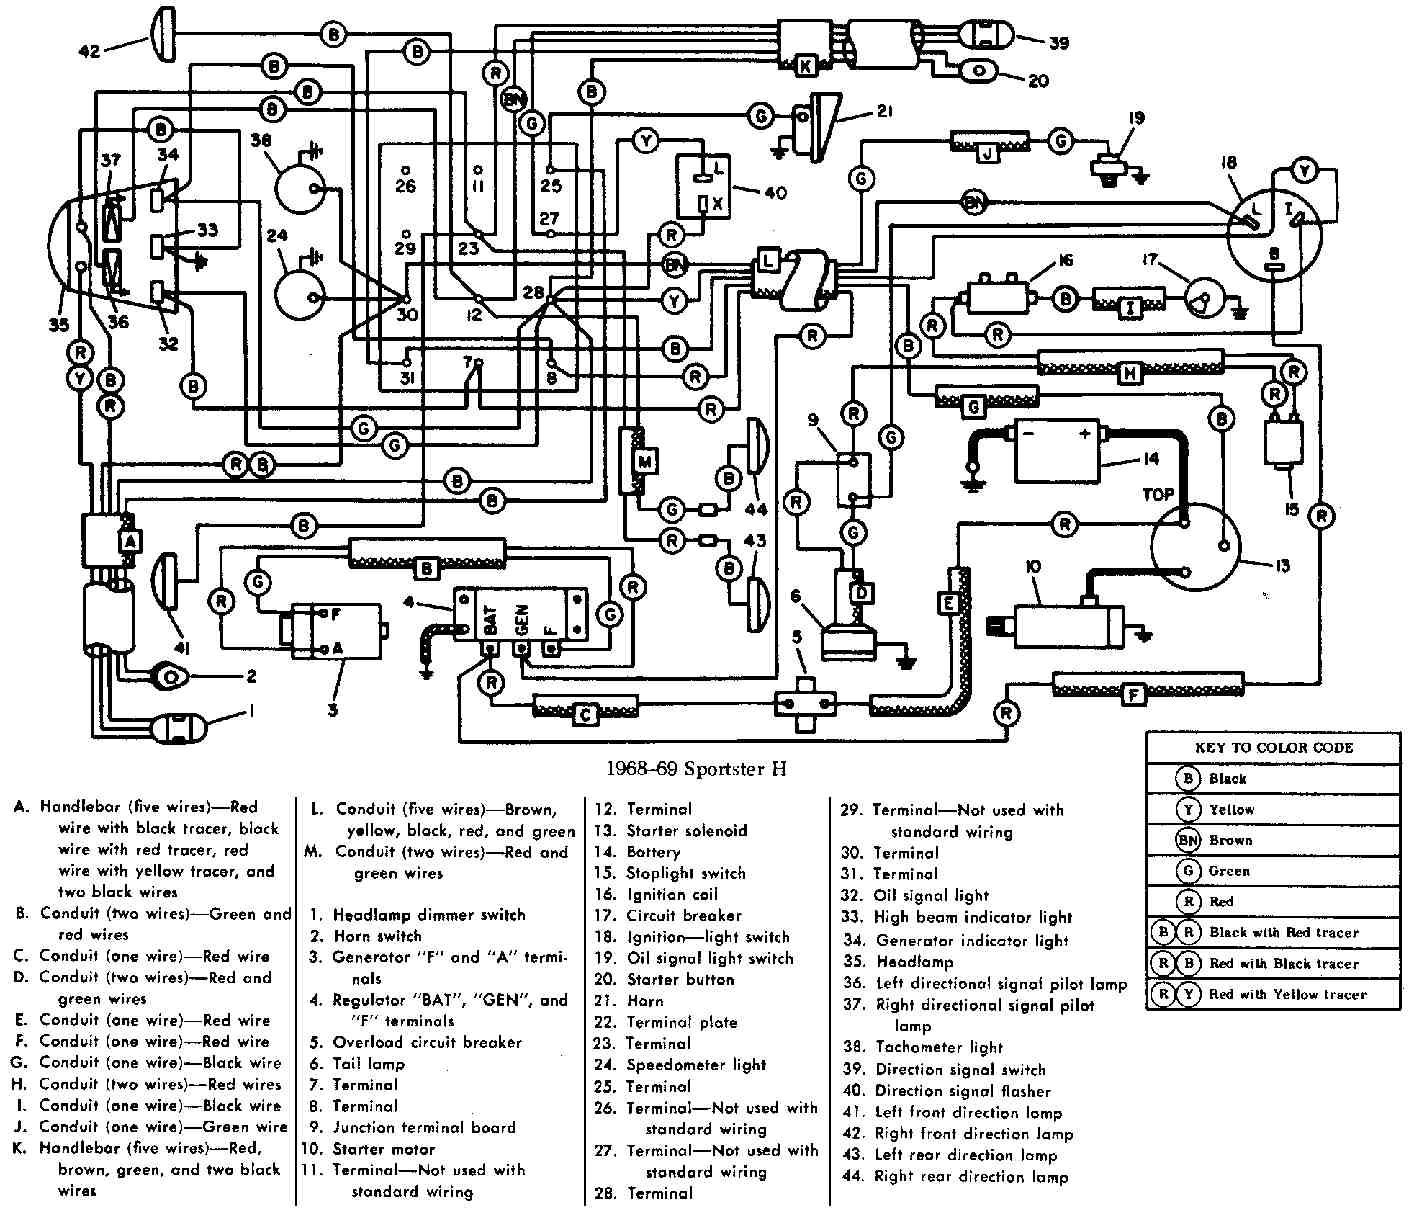 The Following Wiring Schematic Is The Electrical Wiring